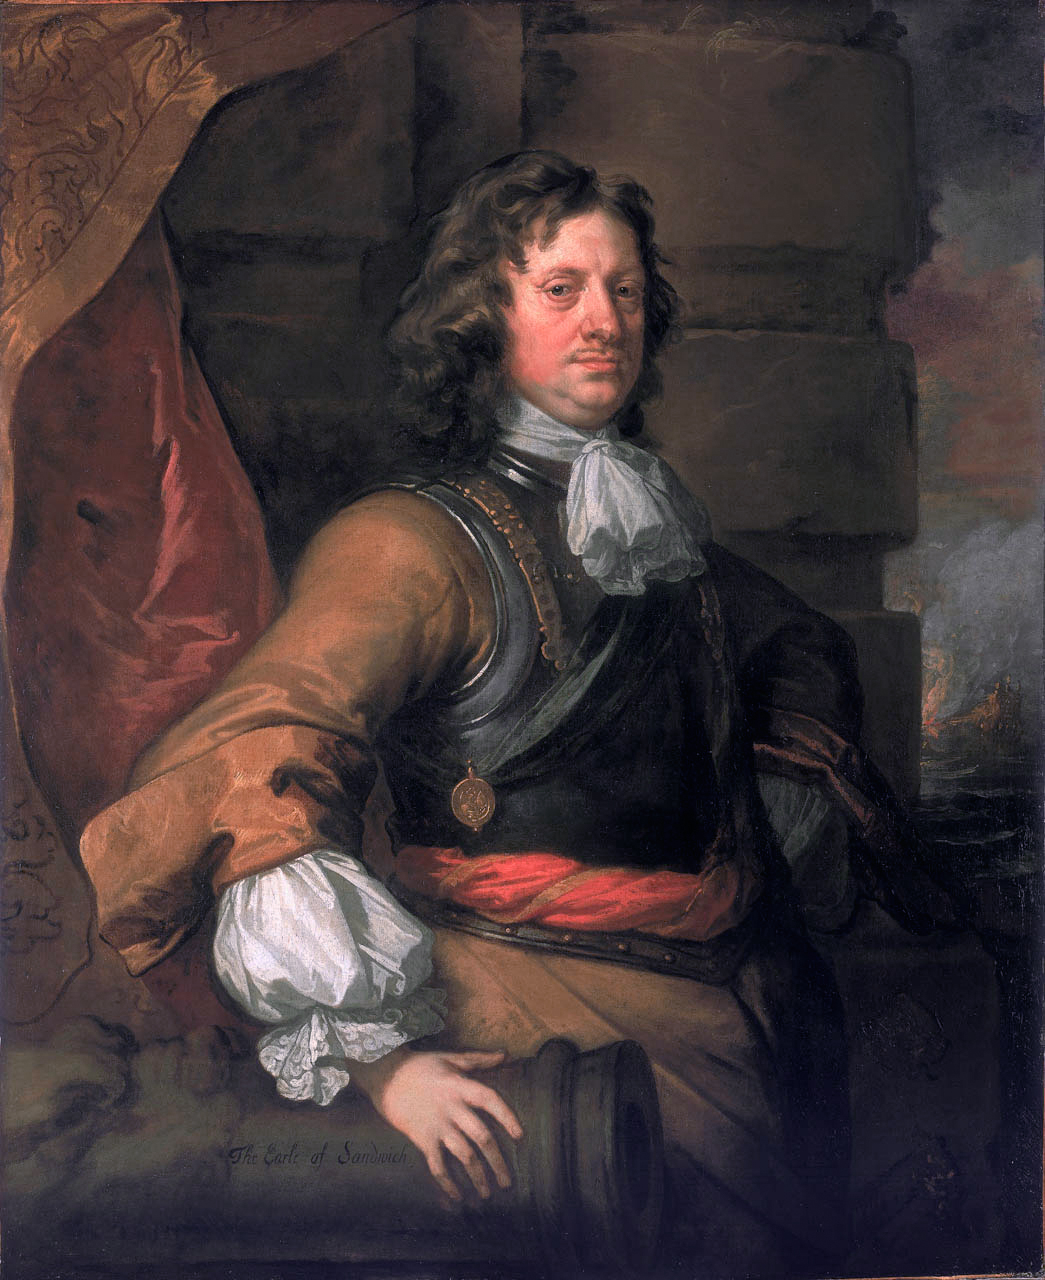 Photo from Wikipedia Commons: http://en.wikipedia.org/wiki/File:Edward_Montagu.jpeg